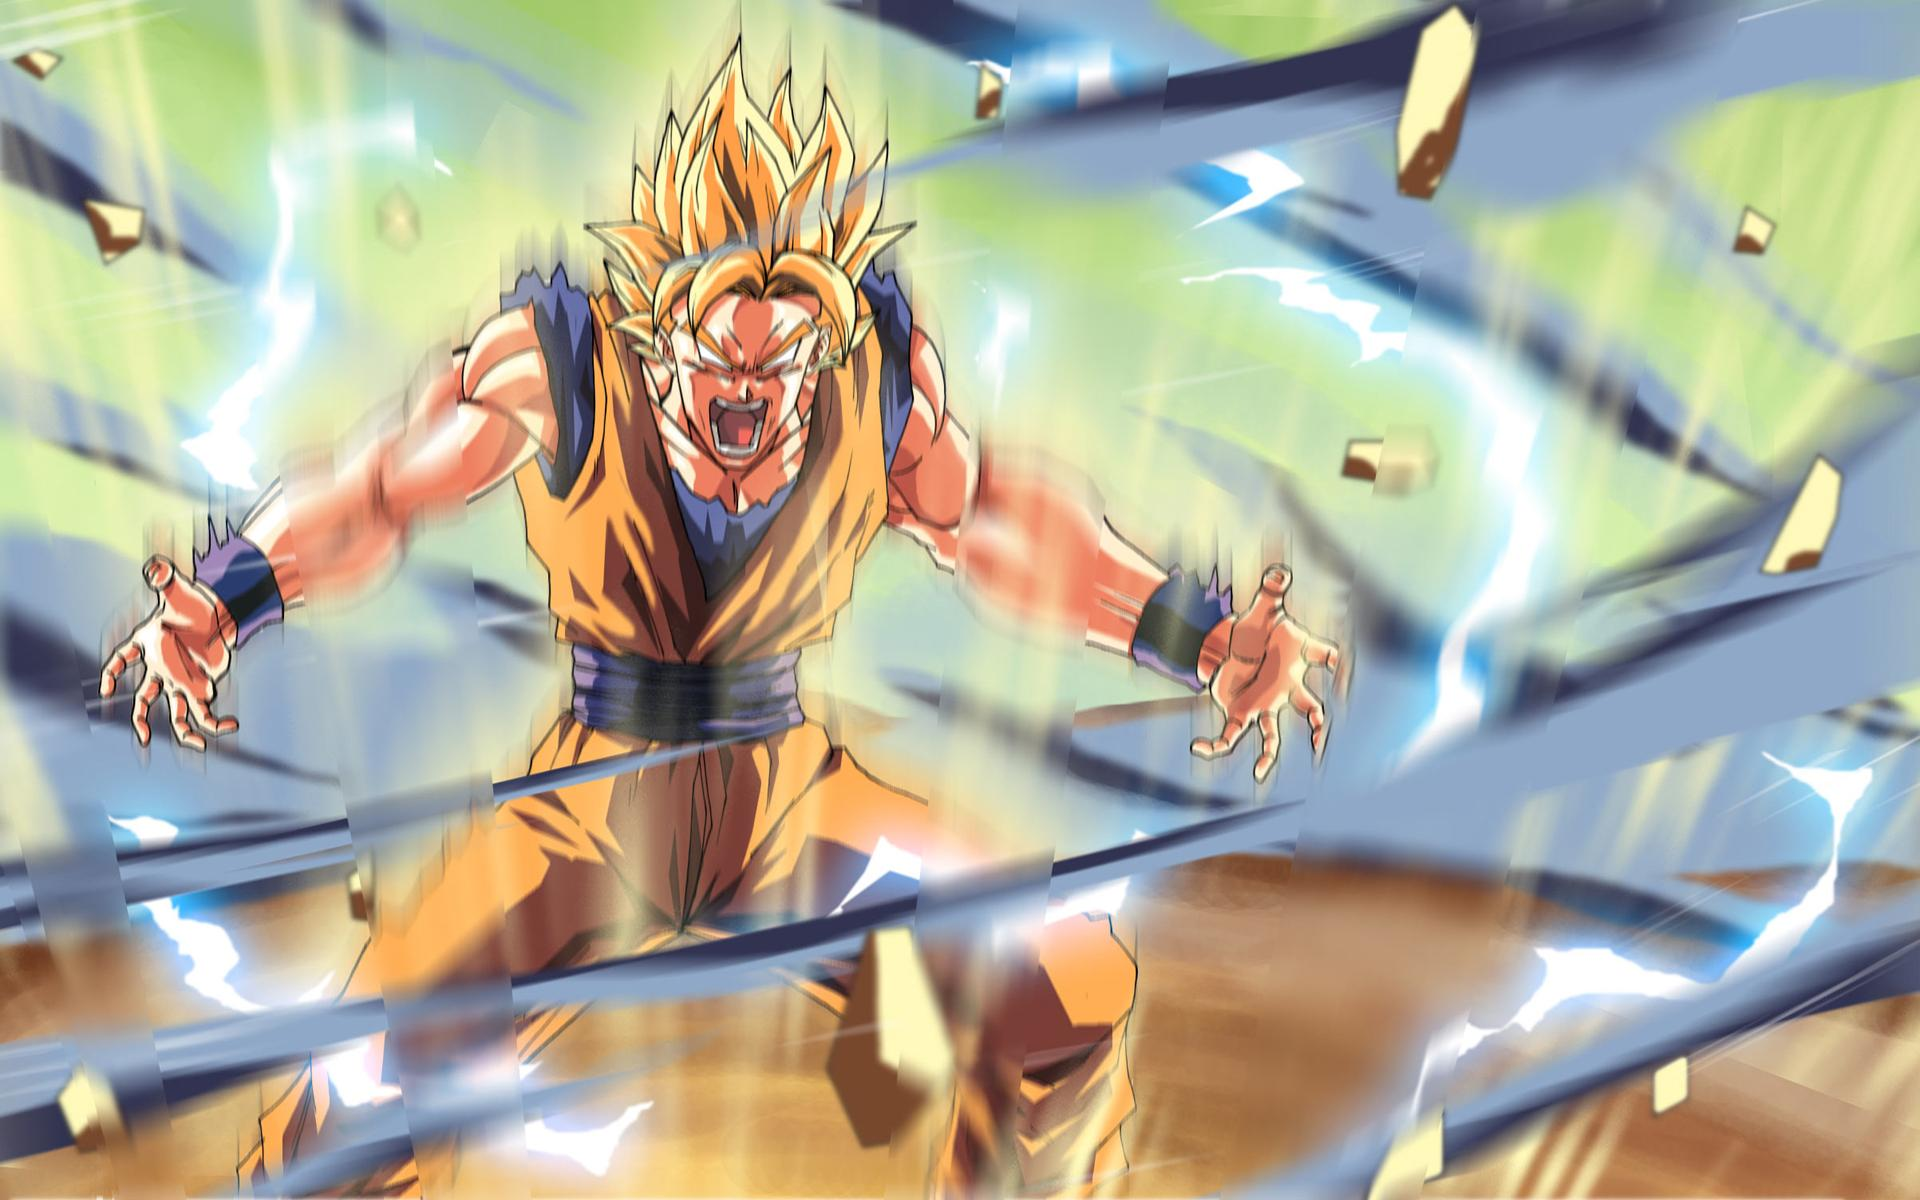 Dbz images goku ss 2 hd wallpaper and background photos for Dragon ball z bedroom wallpaper